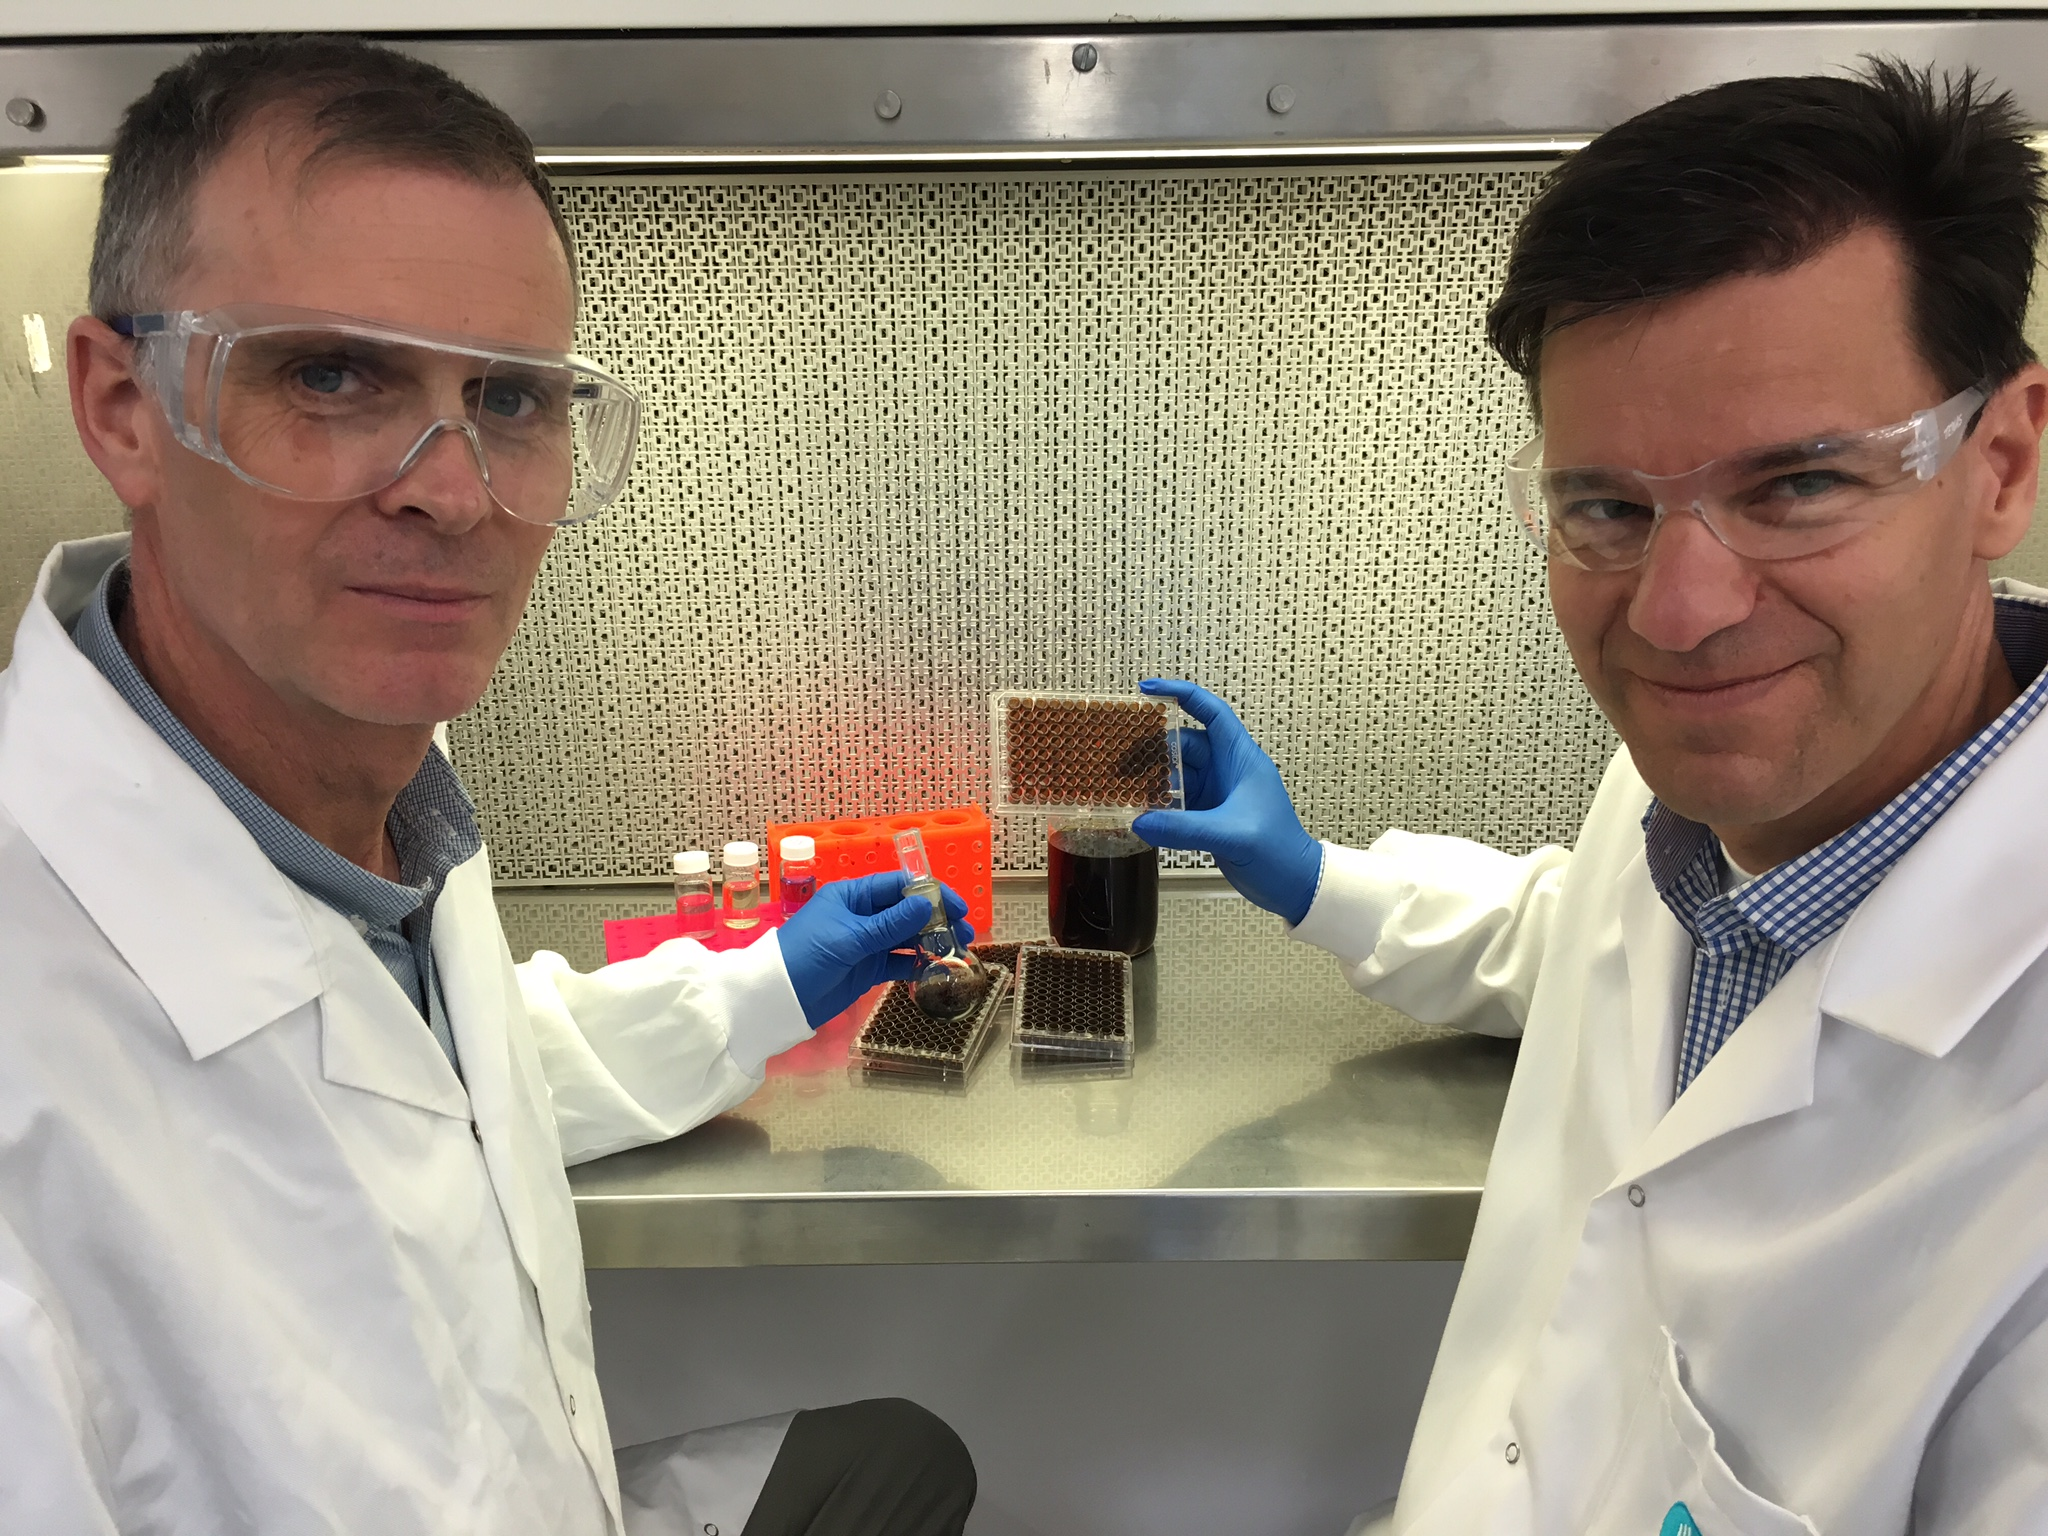 Dr Richard Evans and Dr Helmut Thissen holding lab equipment.